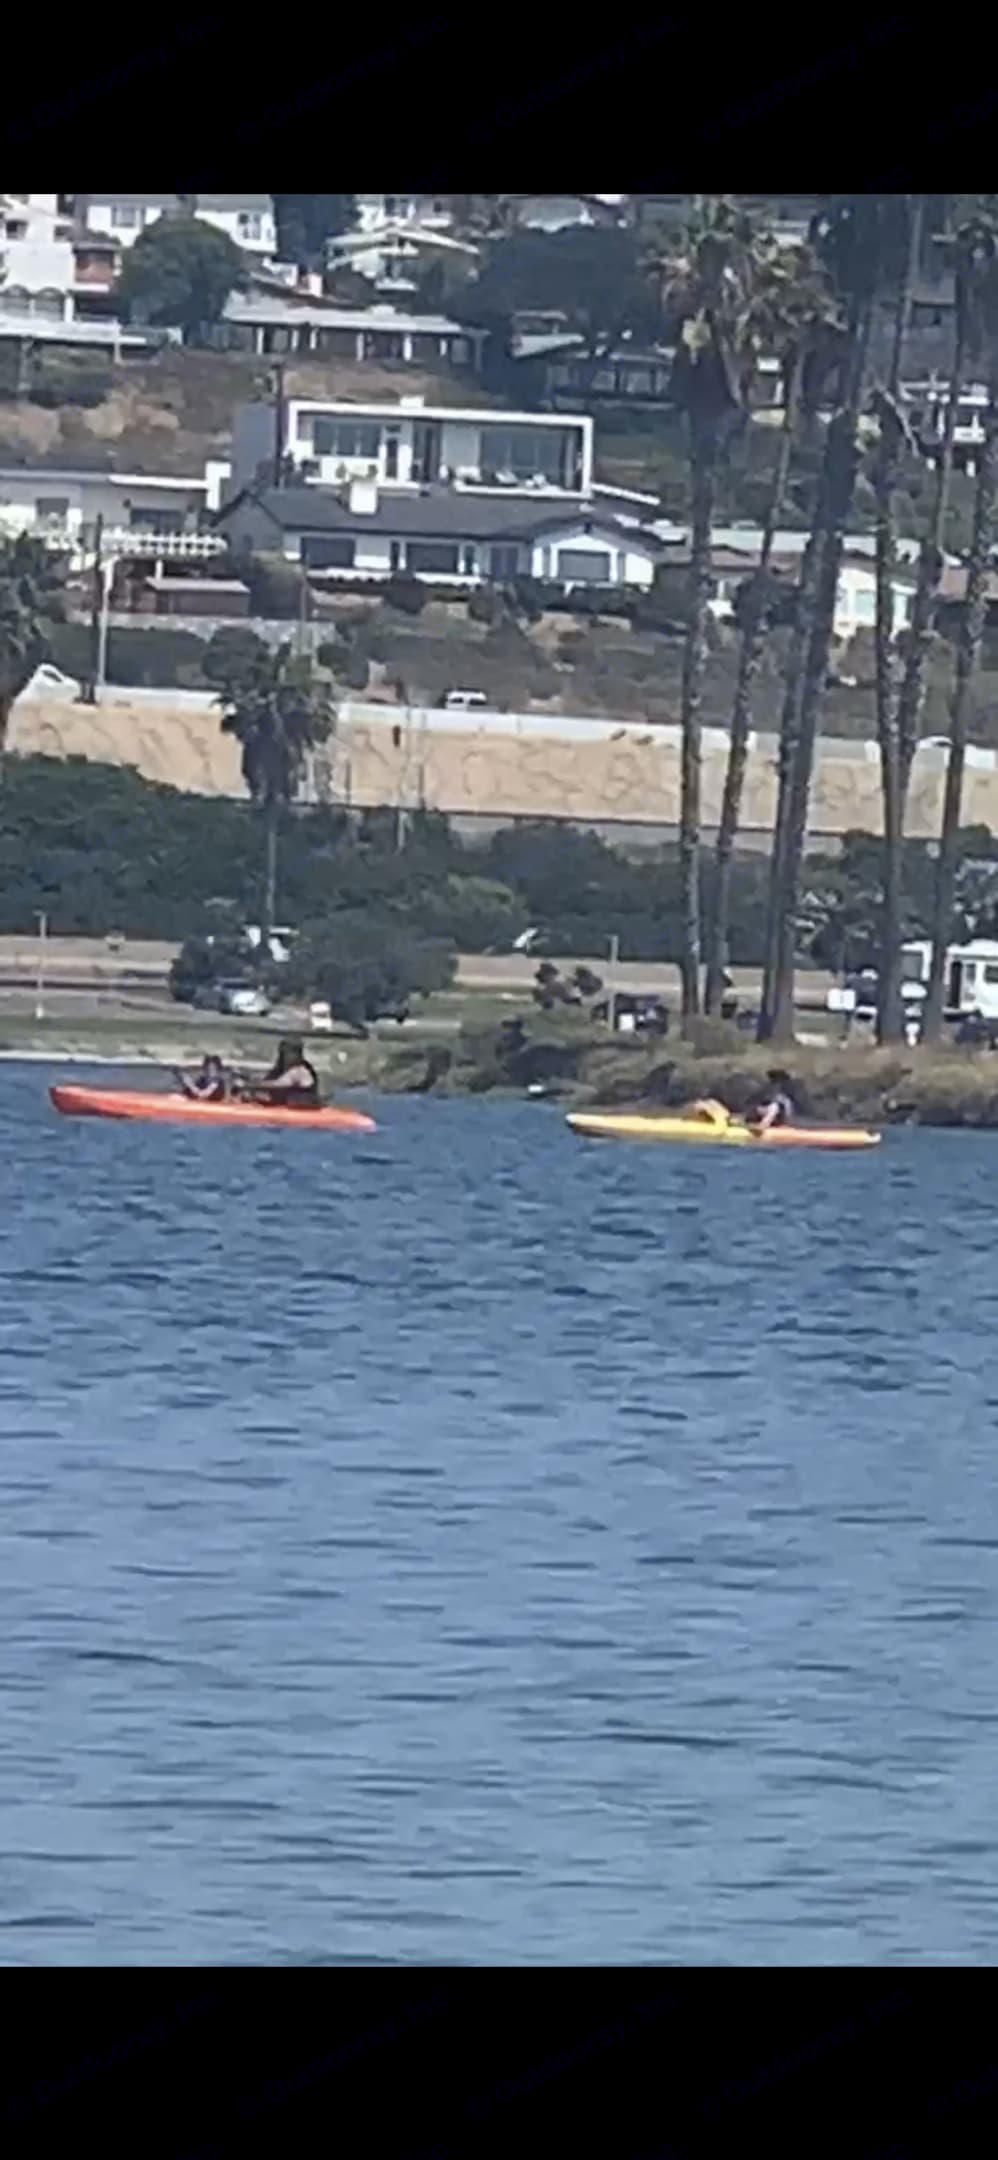 I have kayaks if you would like to rent those as well. Coleman Other 2021